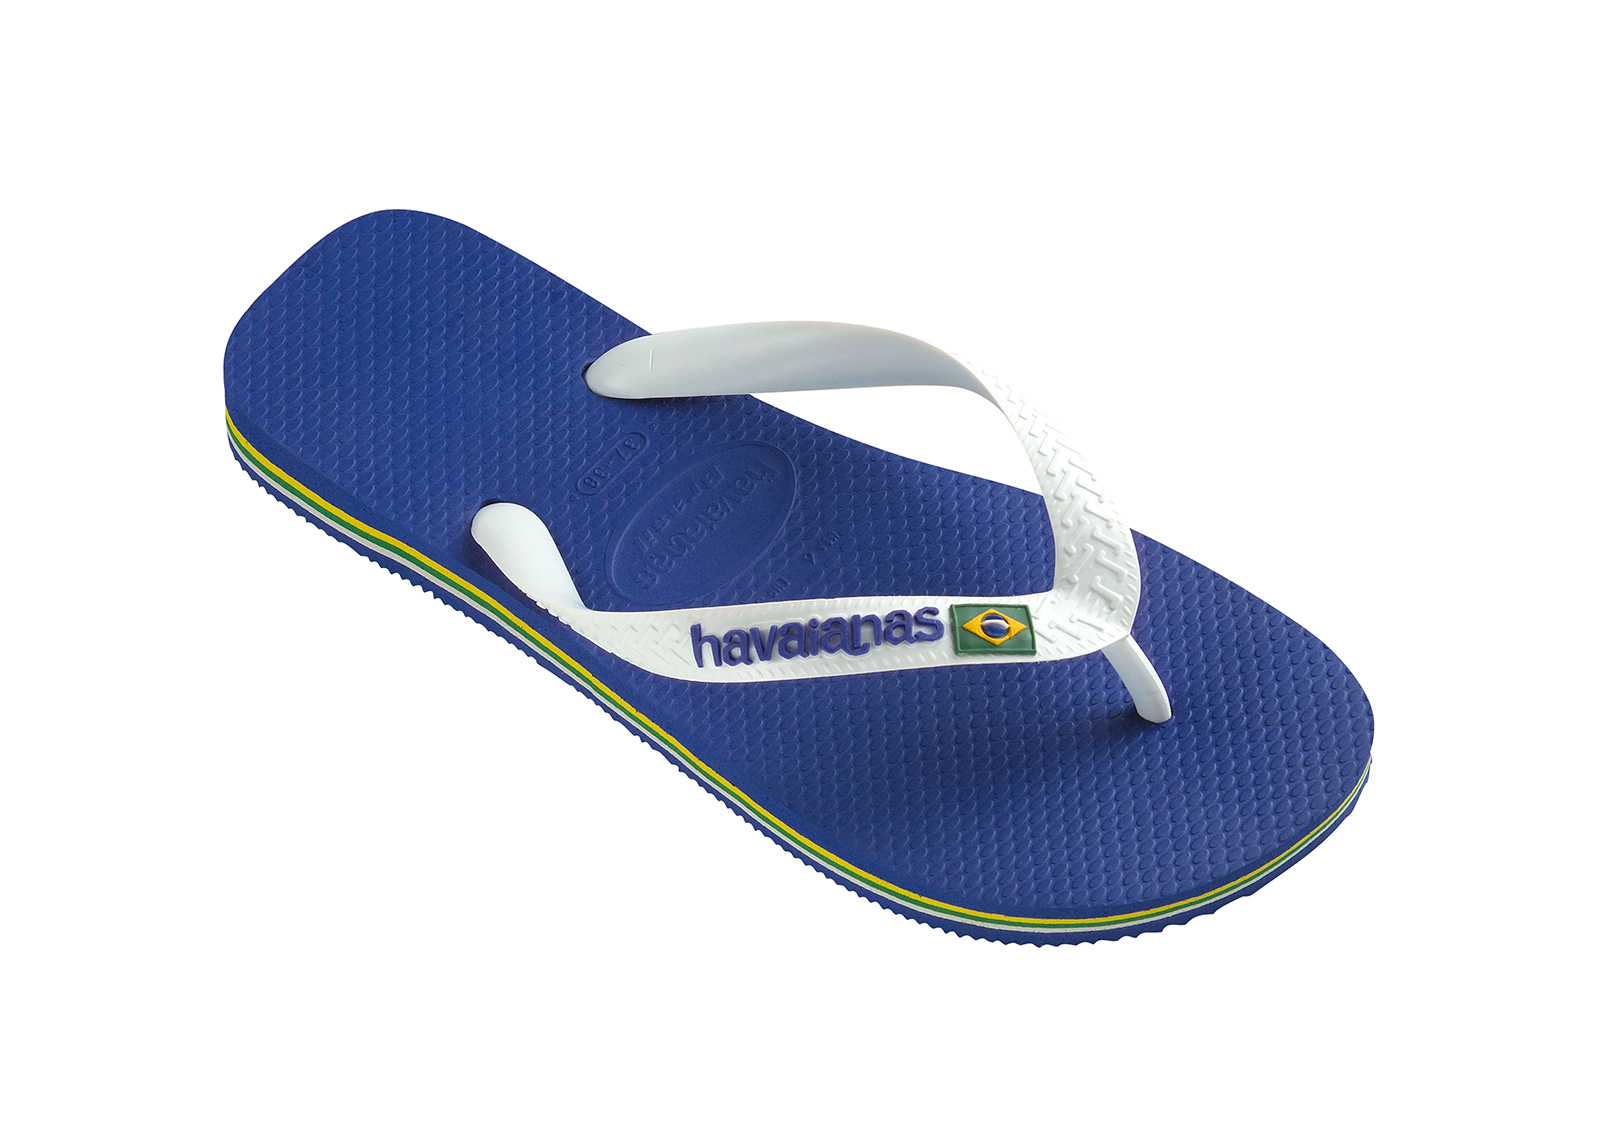 5217eed340212 ... Blue and white flip flops from Havaianas with logo - Brasil Logo Marine  Blue